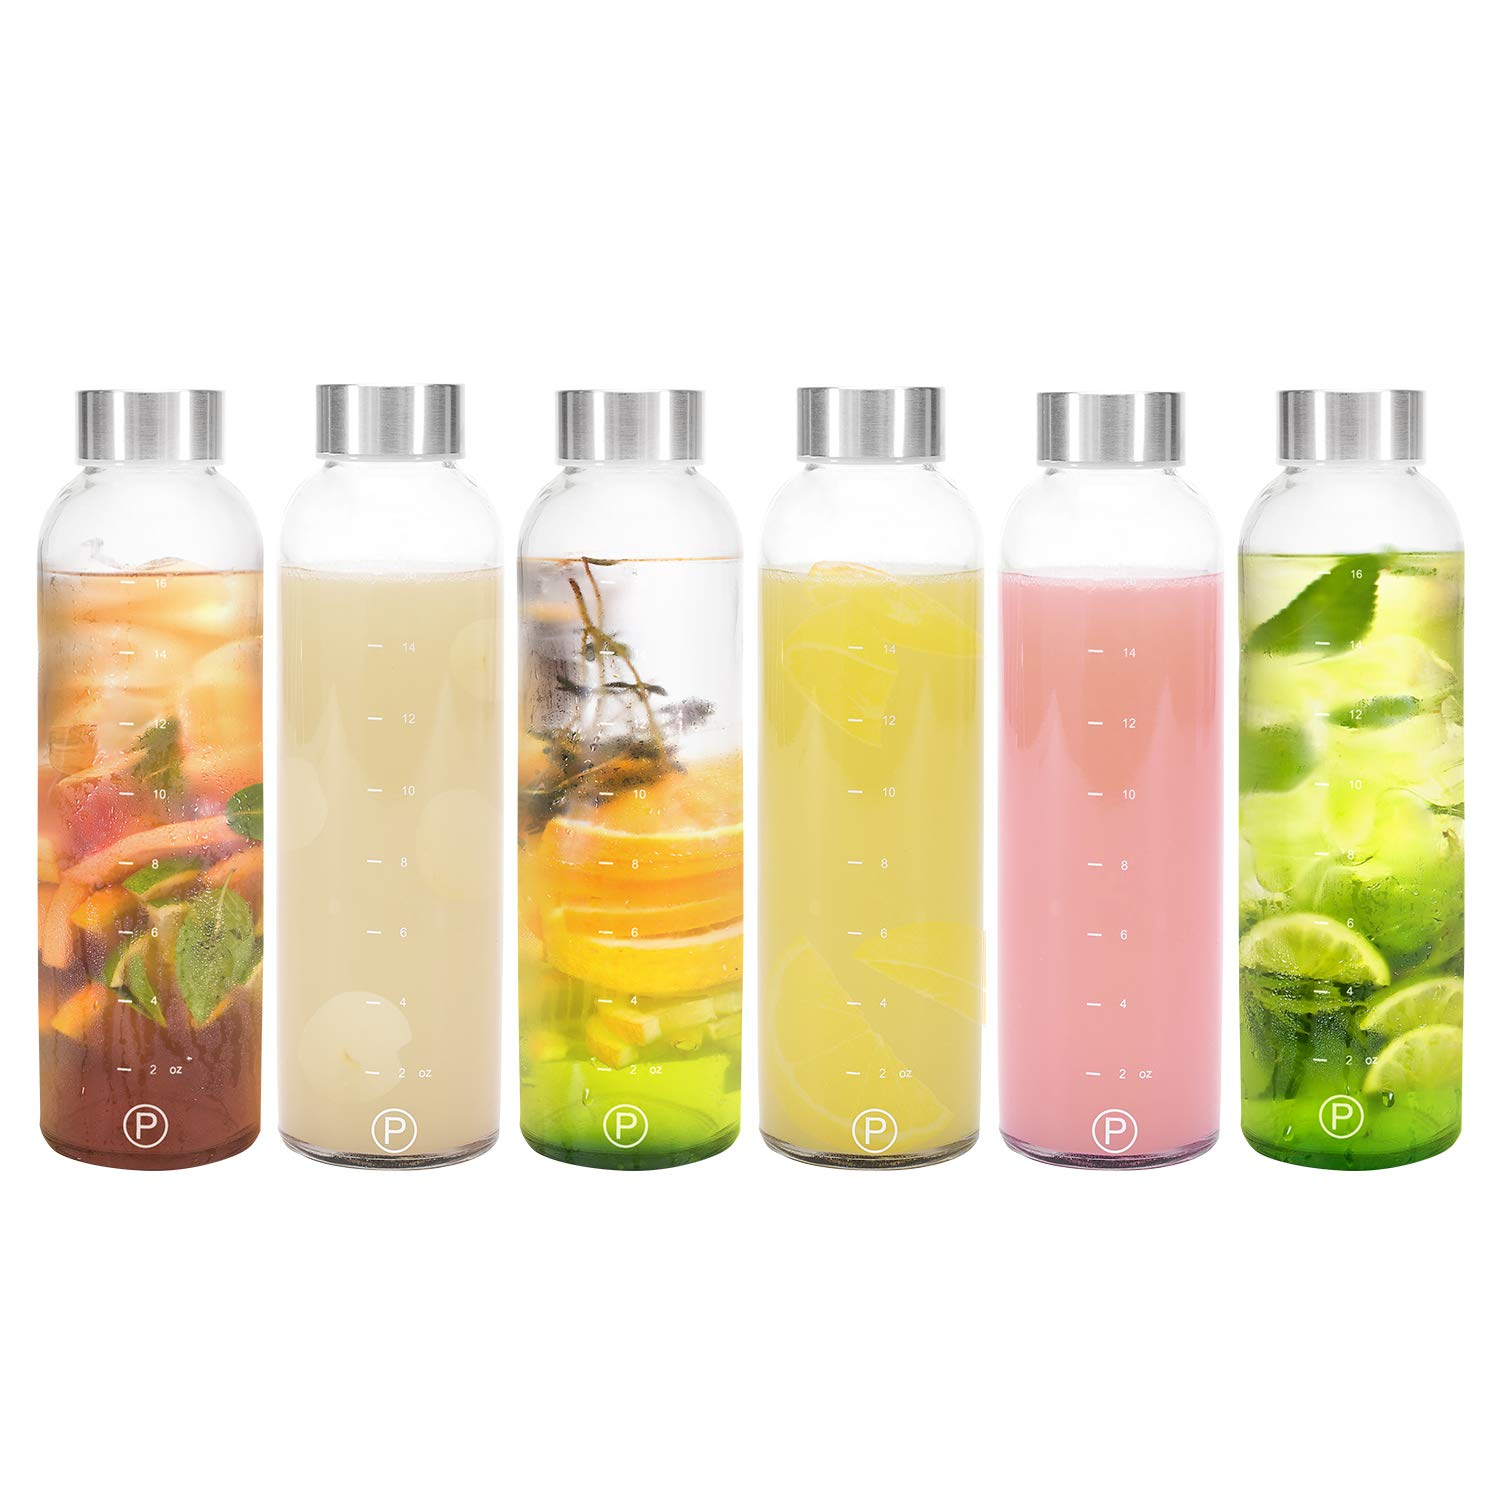 Pratico Kitchen 18oz Leak-Proof Glass Bottles, Juicing Containers, Water/Beverage Bottles - 6-Pack by Pratico Kitchen